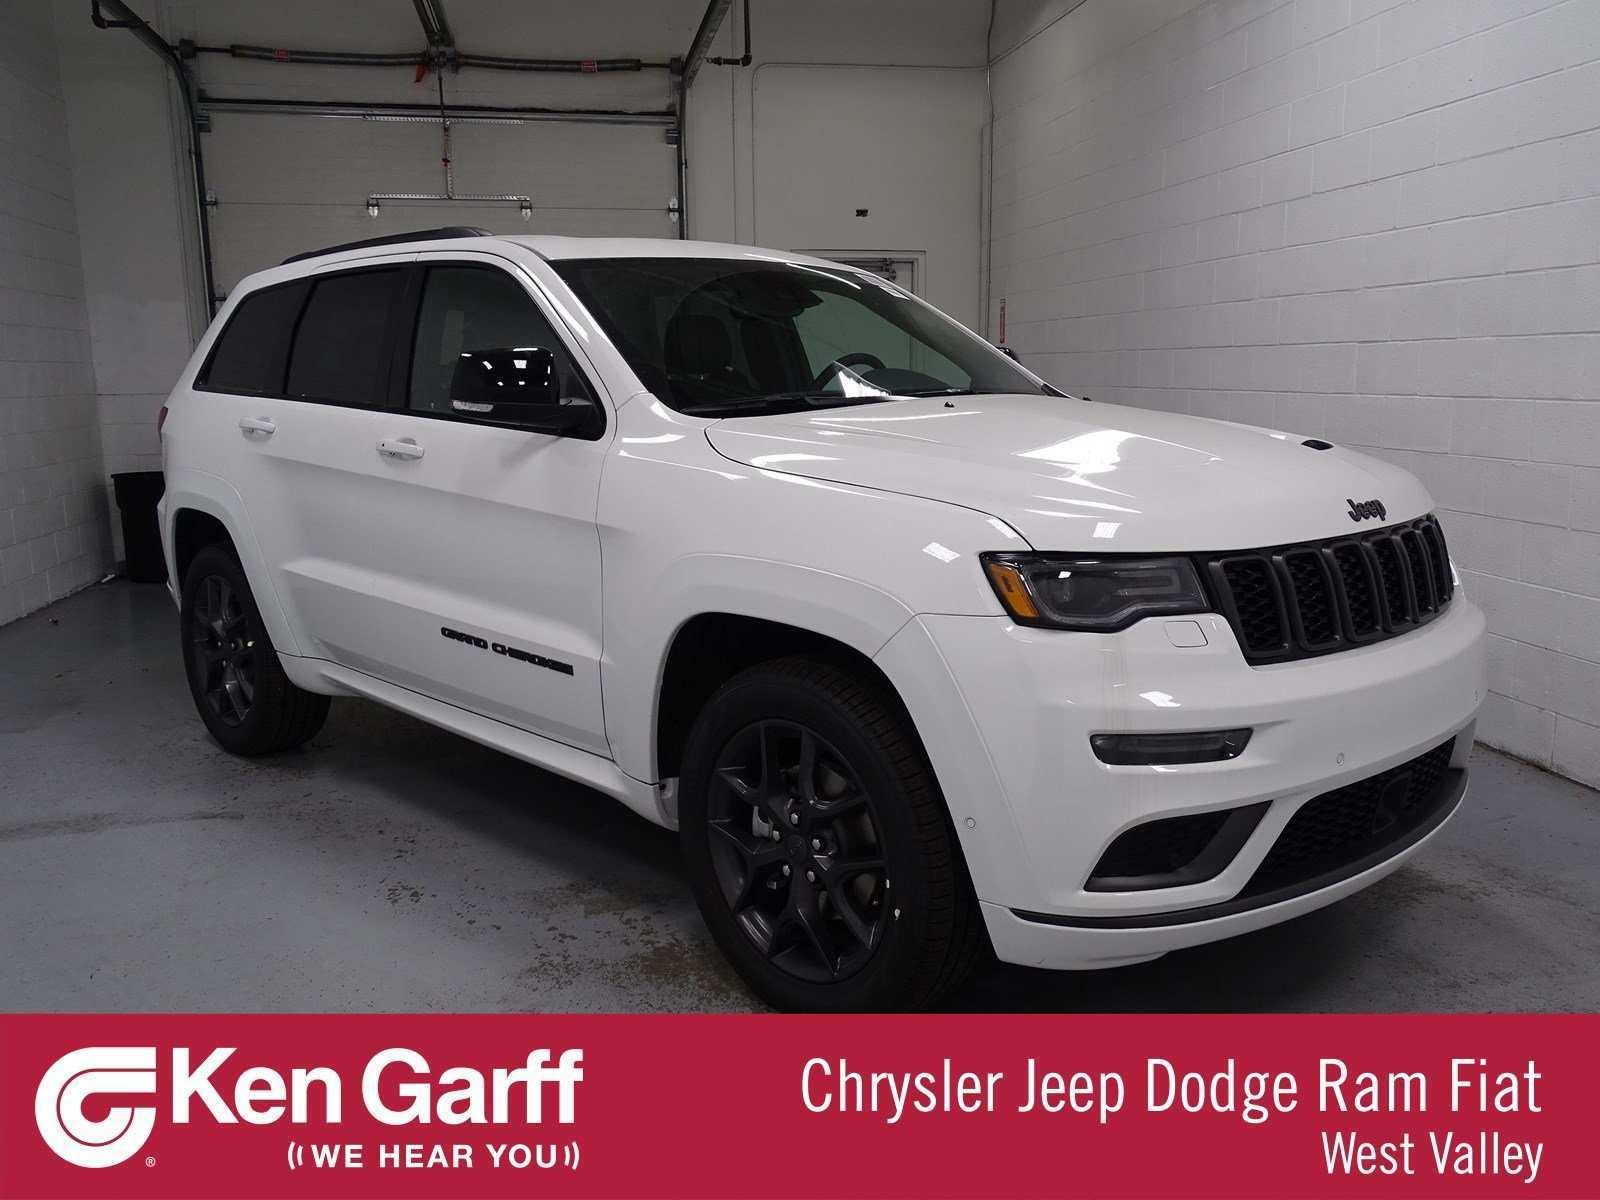 37 All New 2019 Jeep Grand Cherokee Redesign and Concept with 2019 Jeep Grand Cherokee